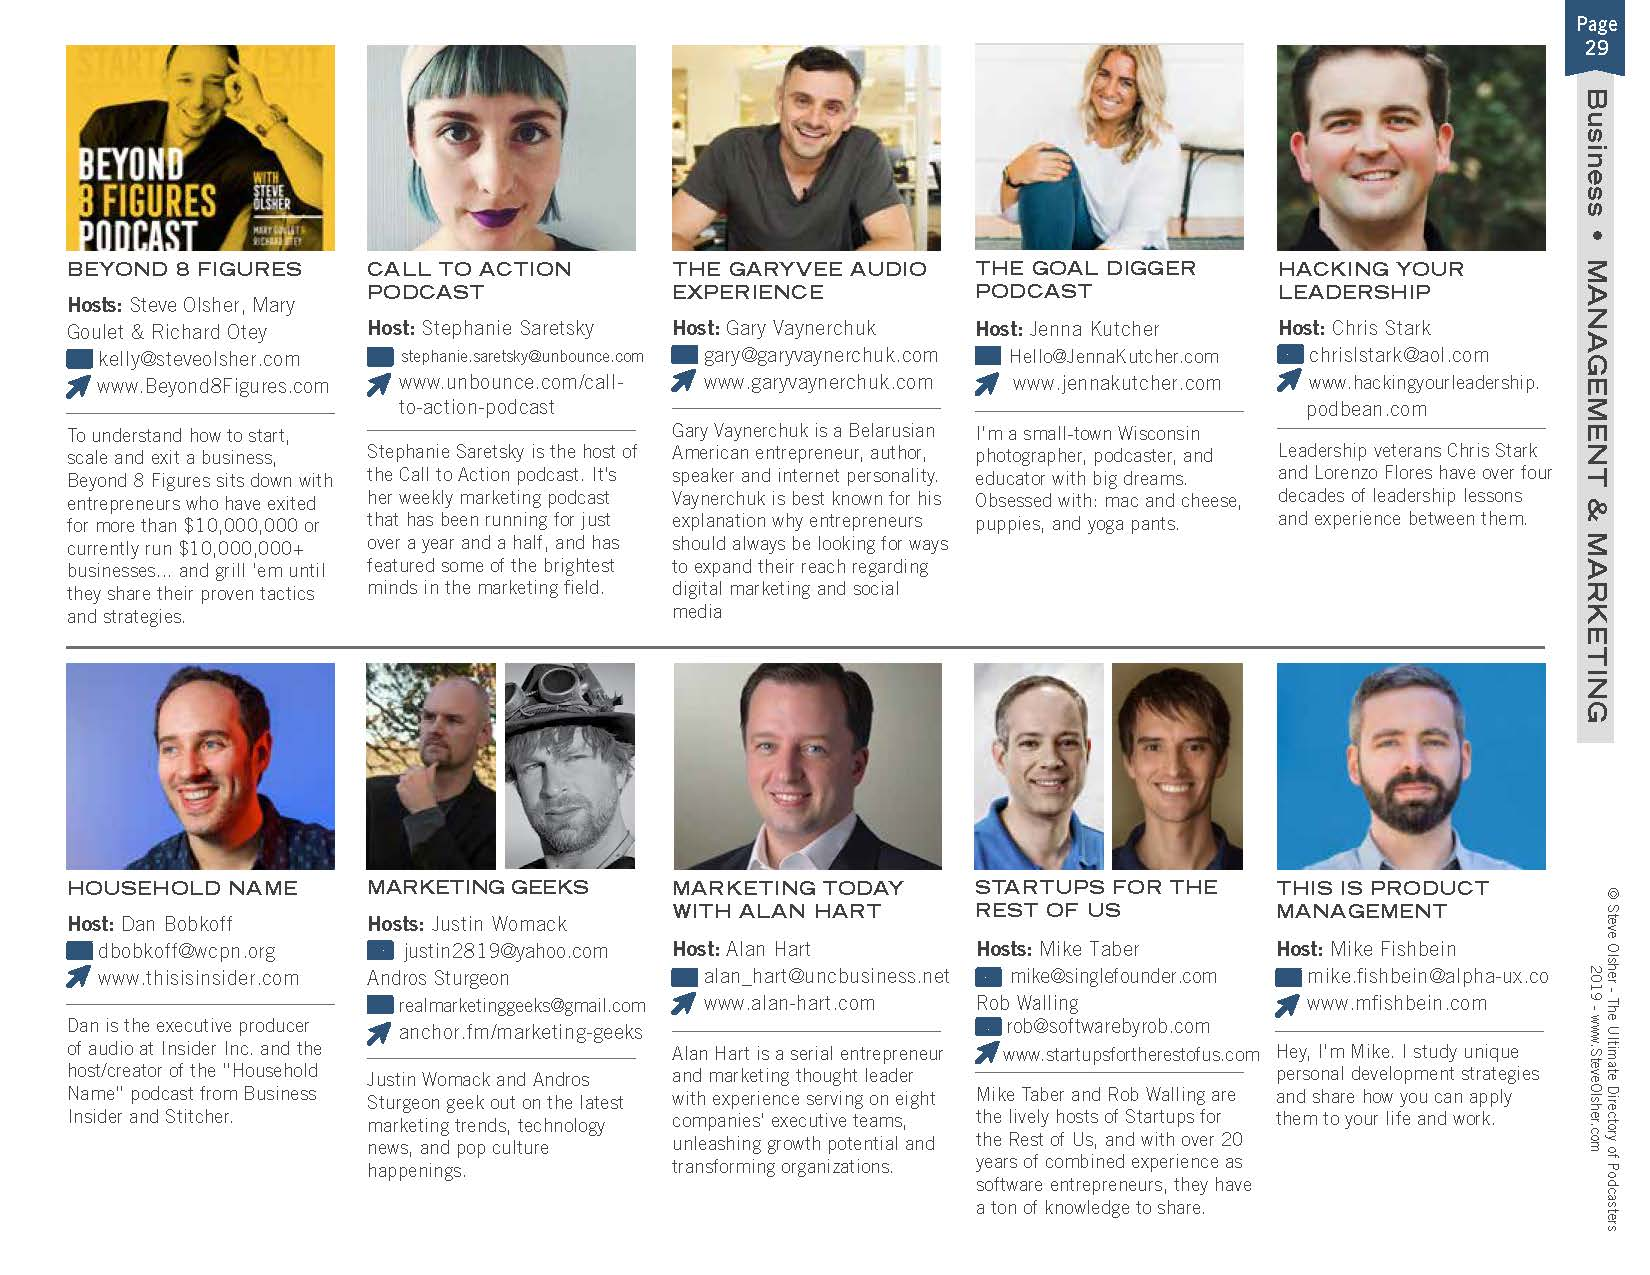 Marketing Geeks listed in the Ultimate Directory of Podcasters by New Media Summit and Steve Olsher